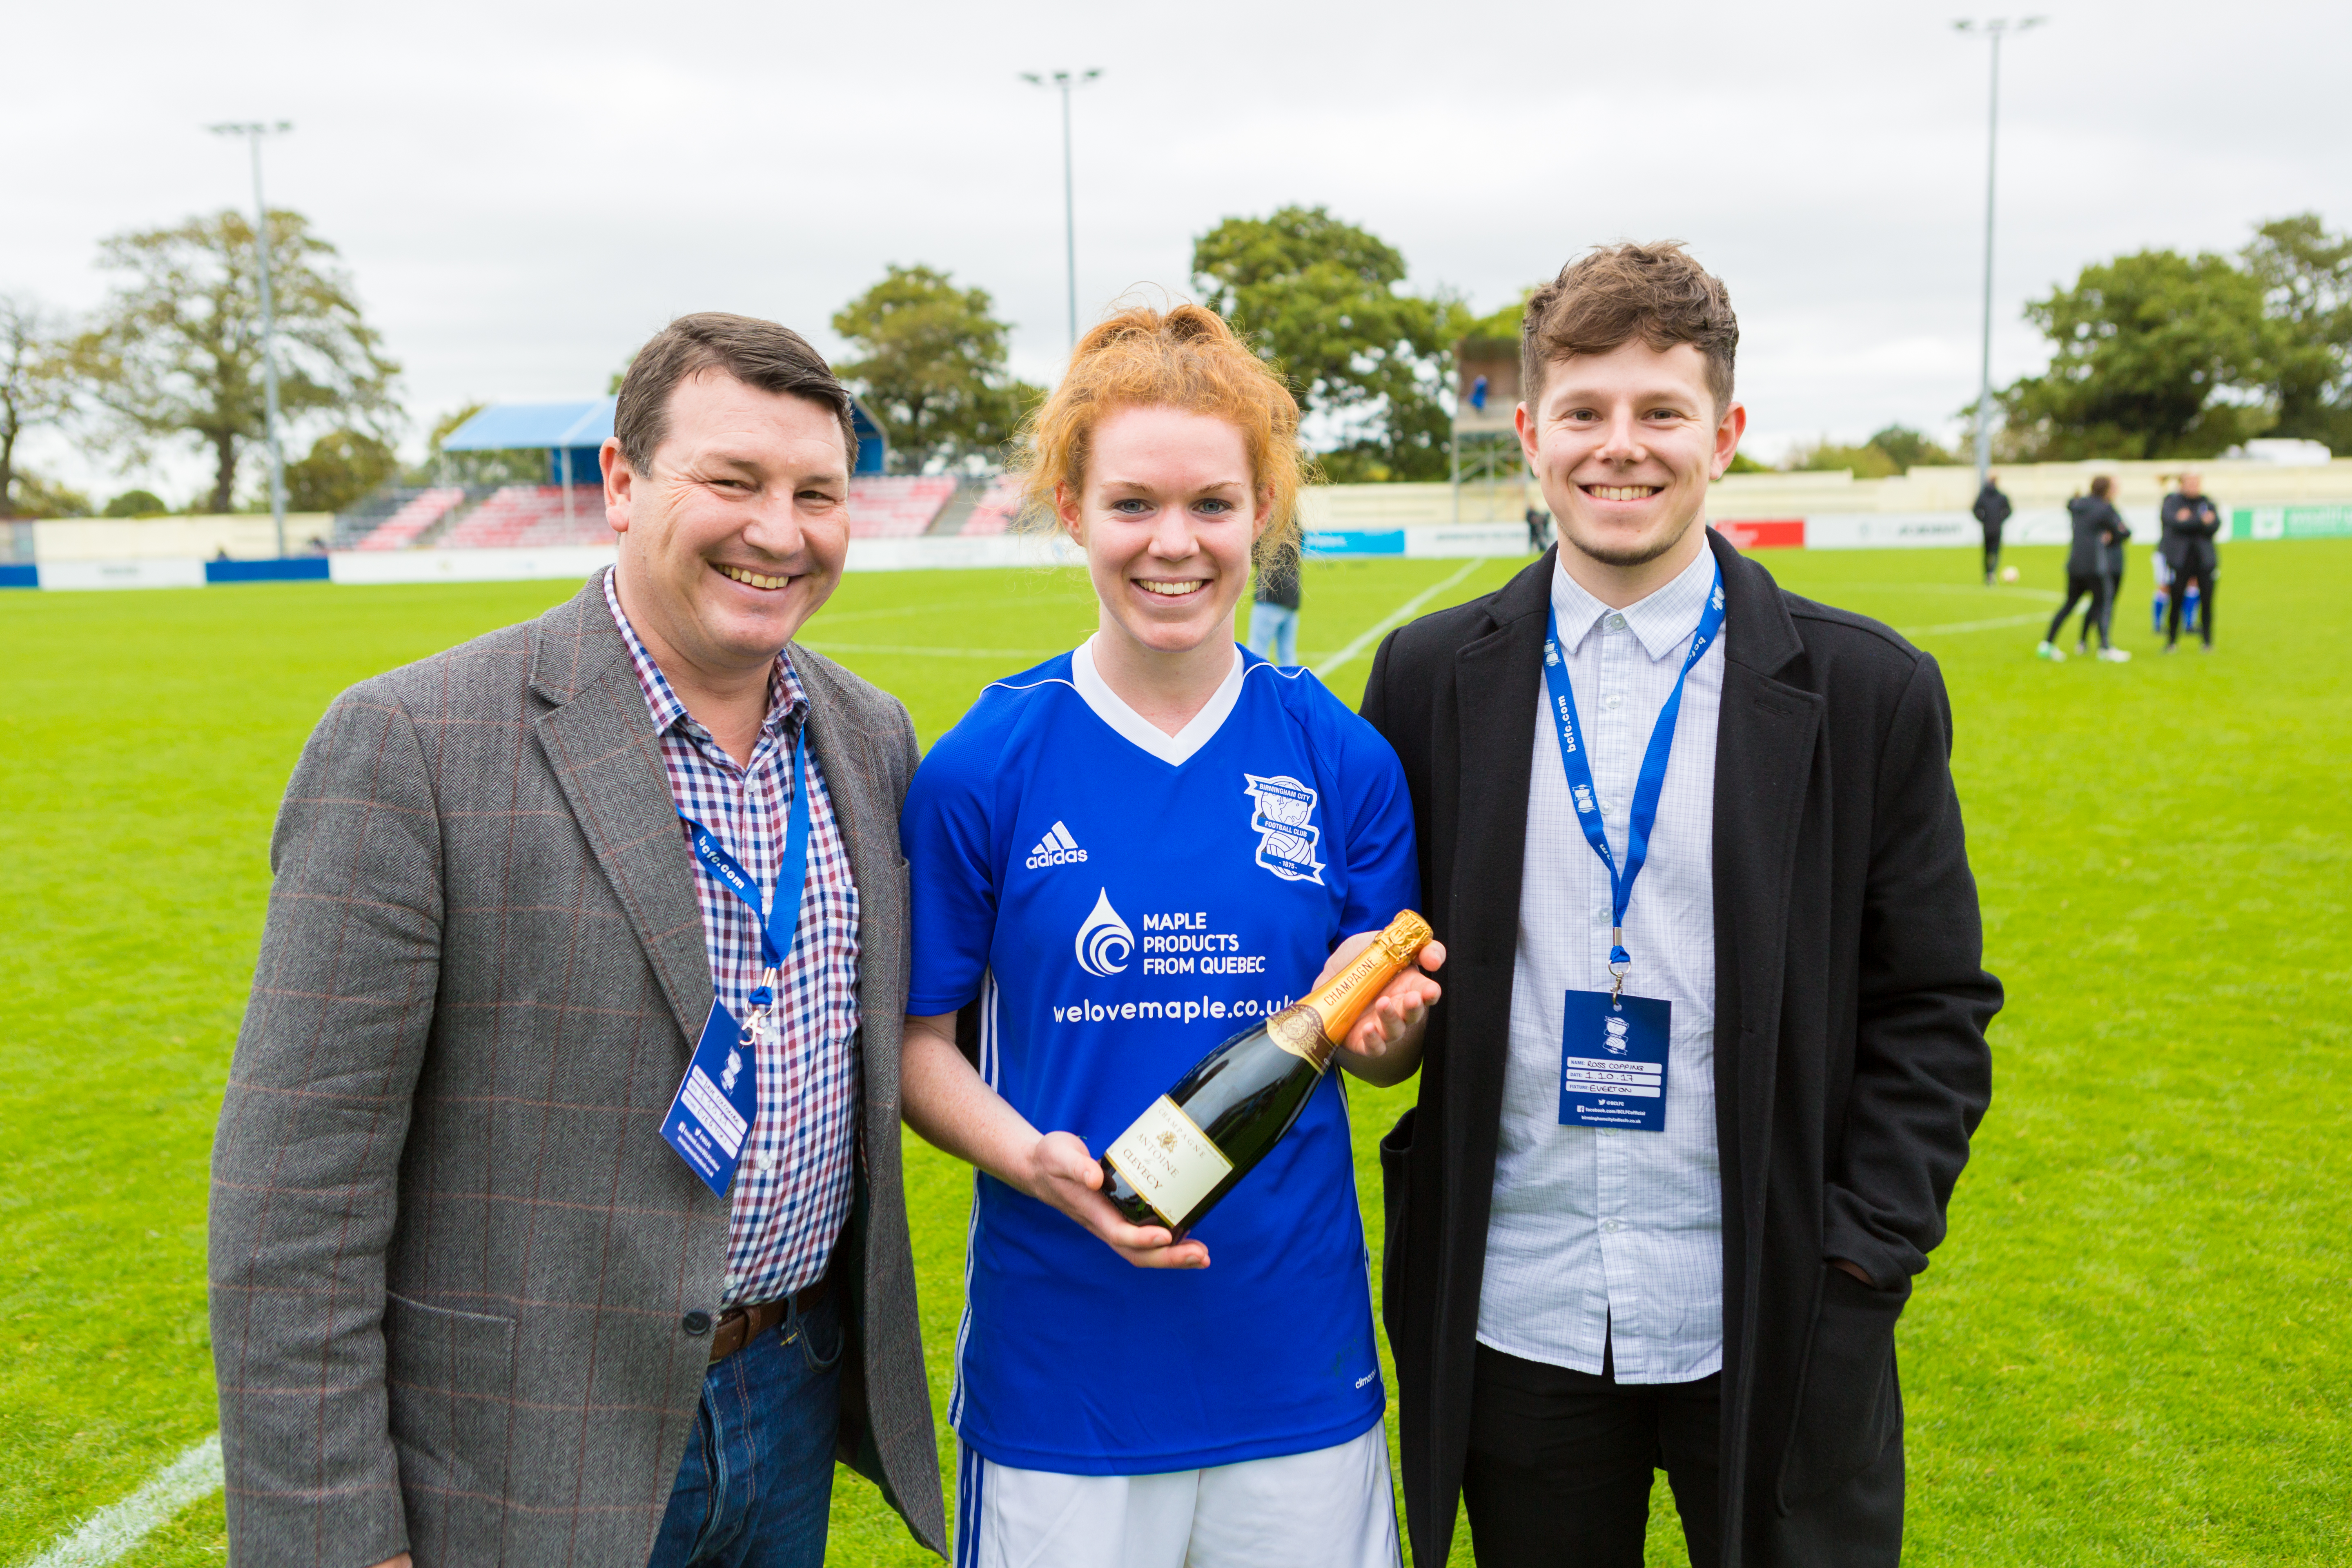 Aoife Mannion, Player of the Match